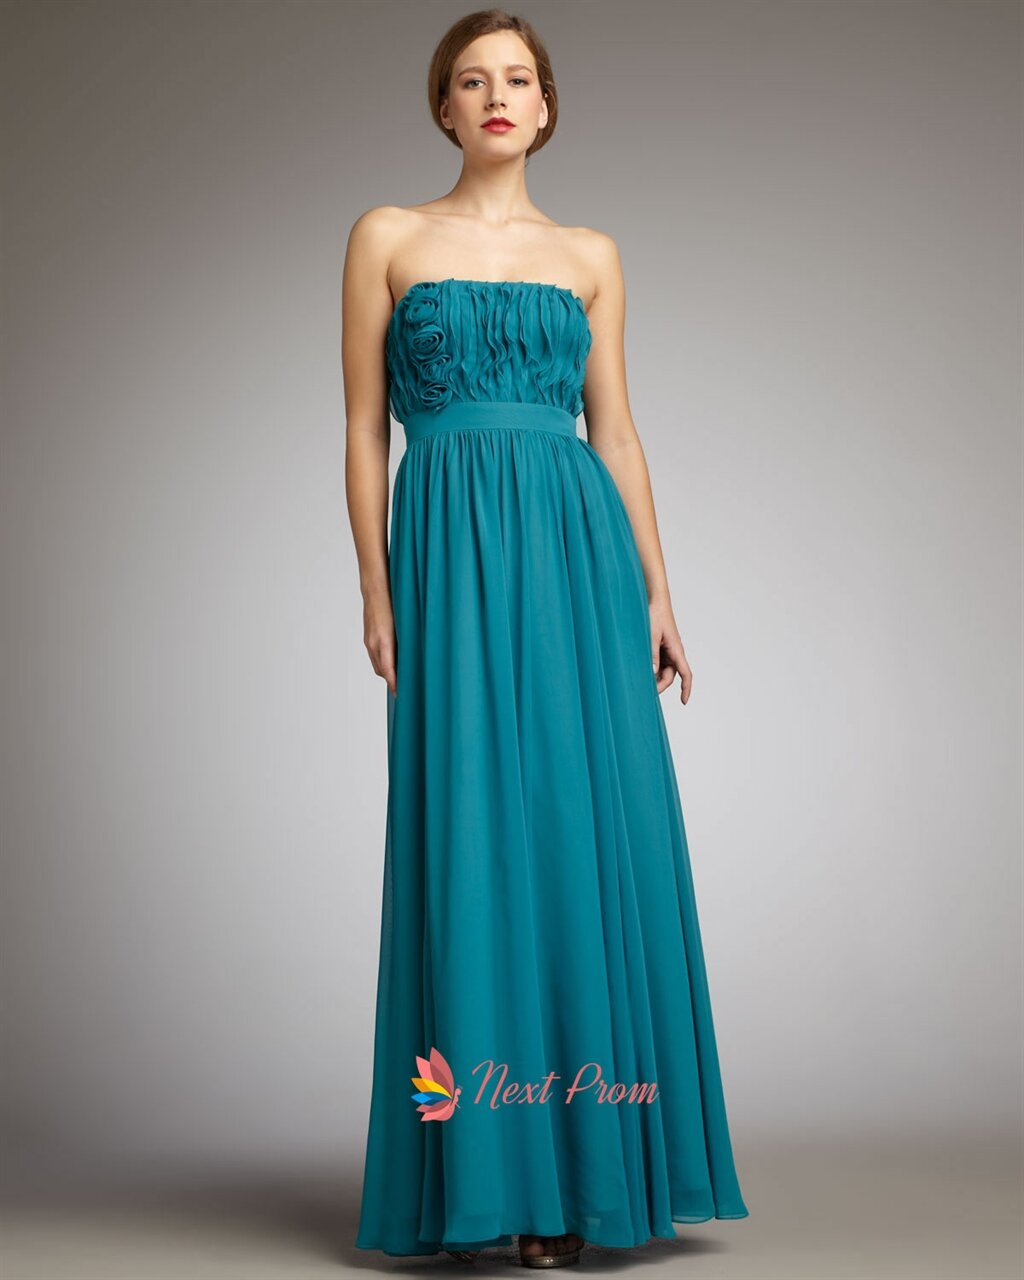 Teal dresses for wedding Photo - 7